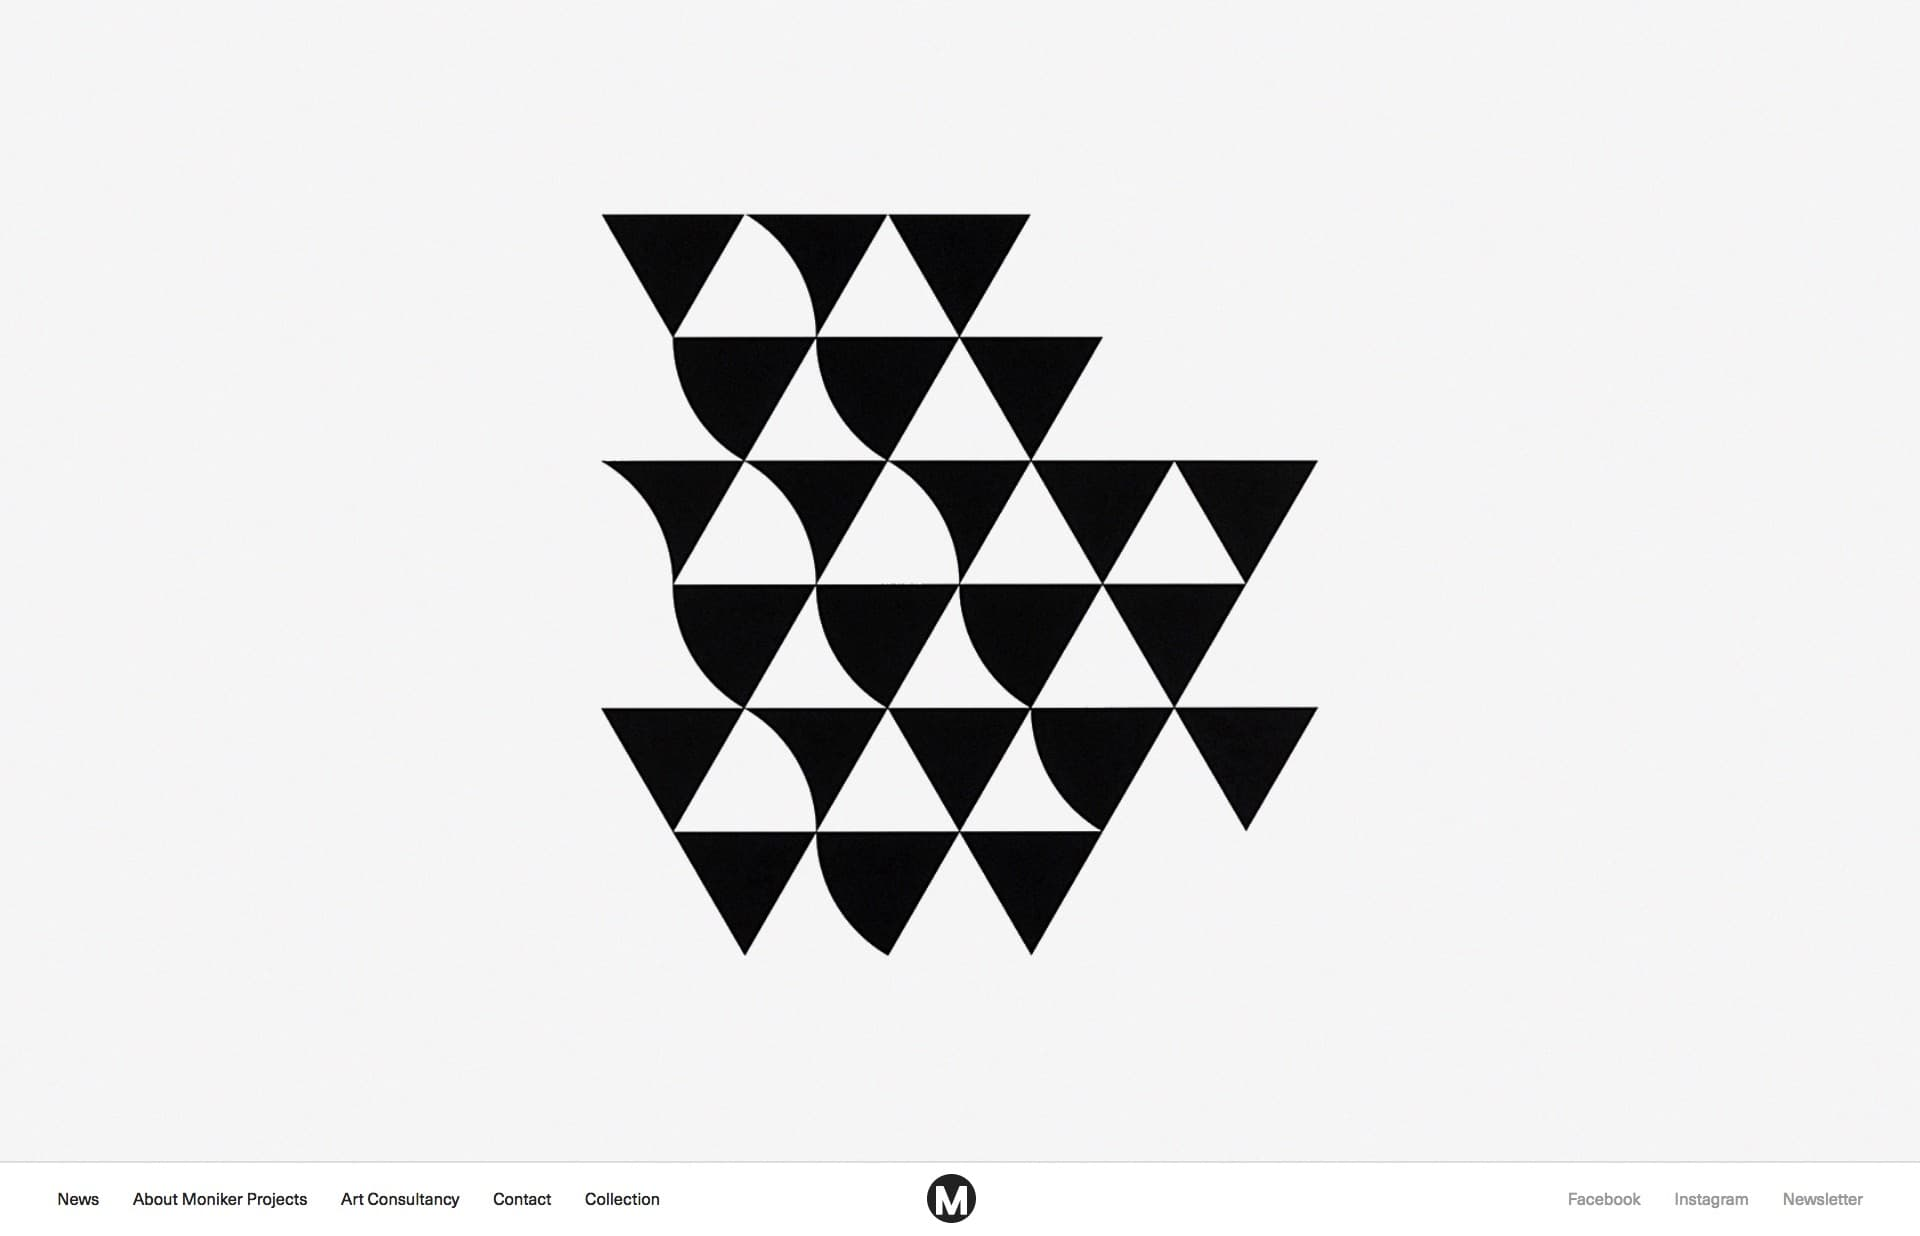 Screenshot of the website Moniker Projects, featured on The Gallery, a curated collection of minimal websites